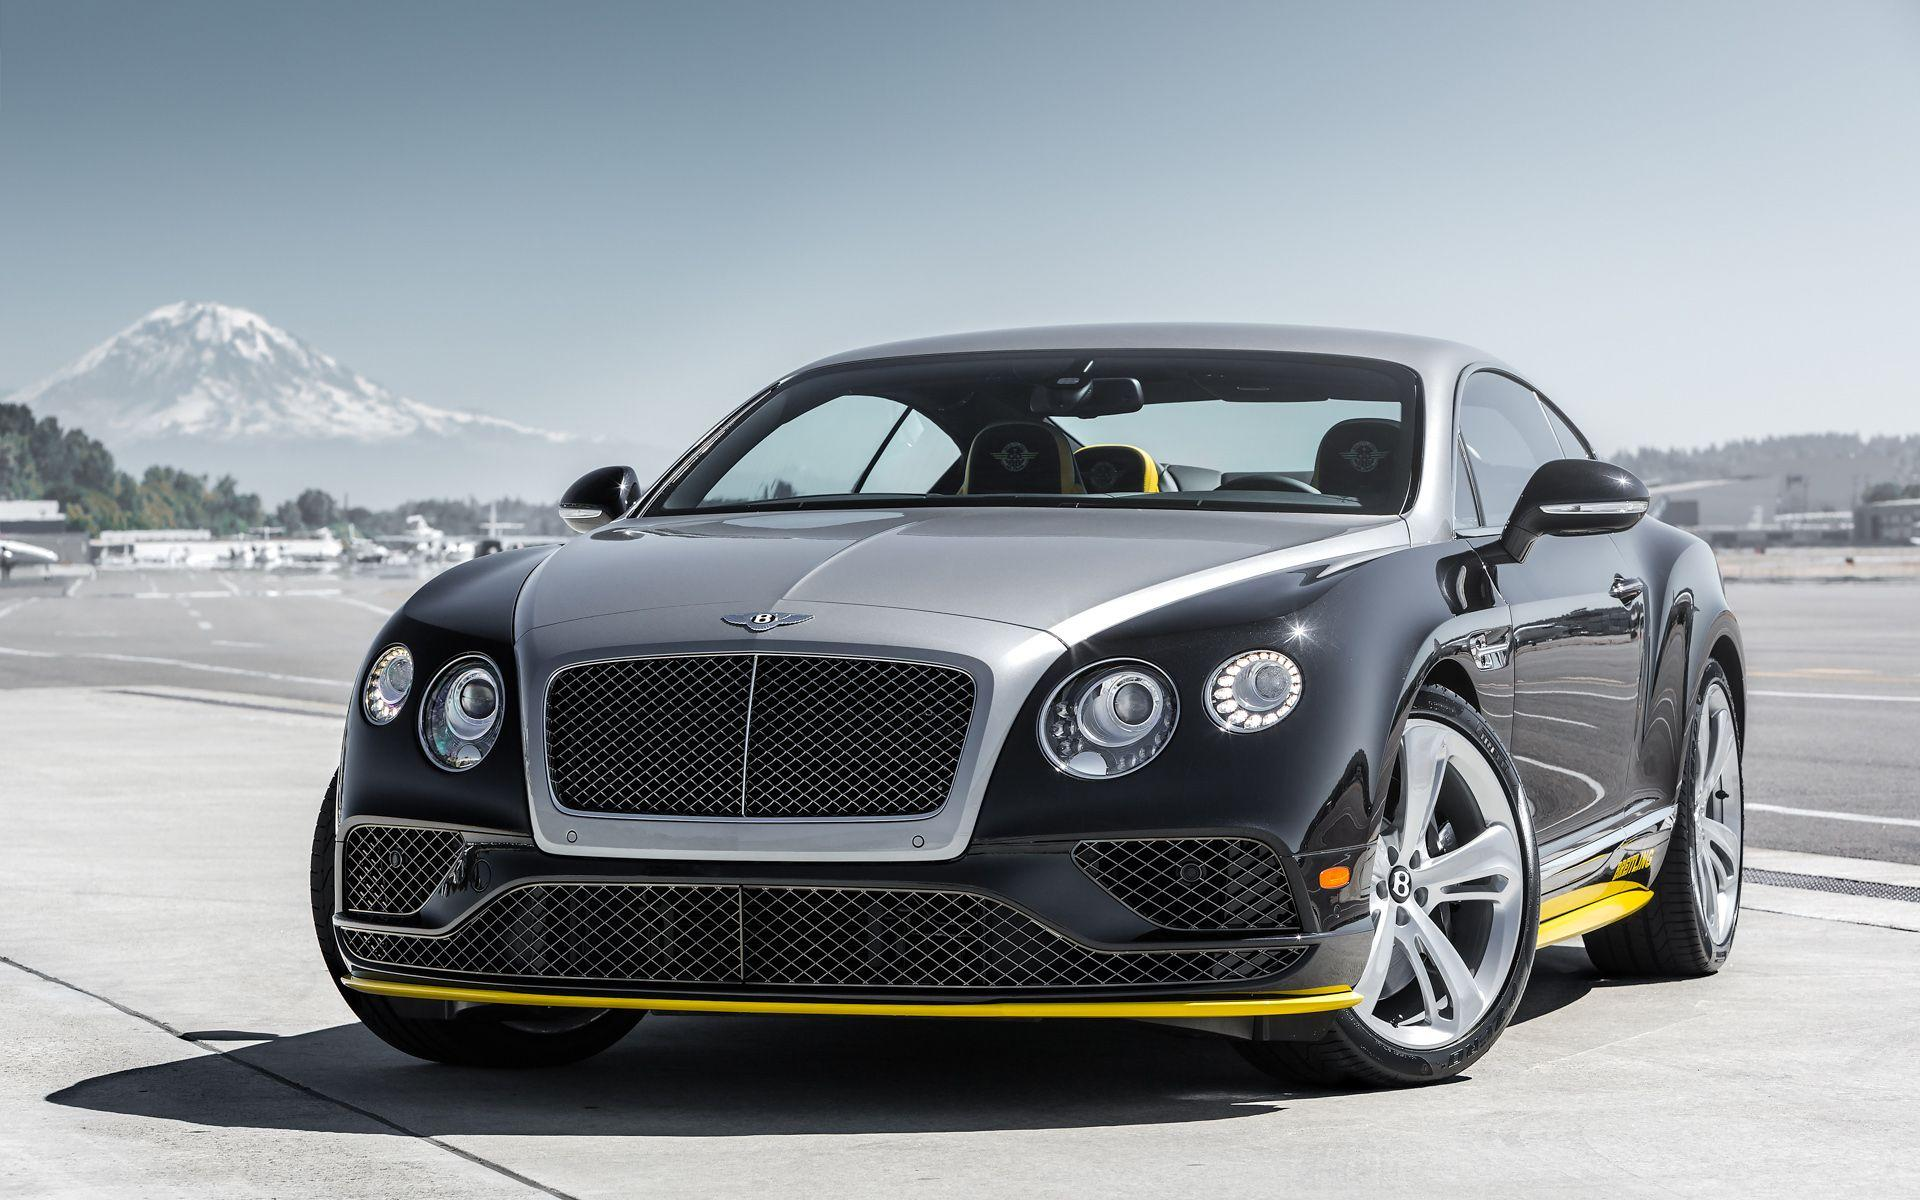 2015 Bentley Continental GT Wallpapers | HD Wallpapers | ID #15656